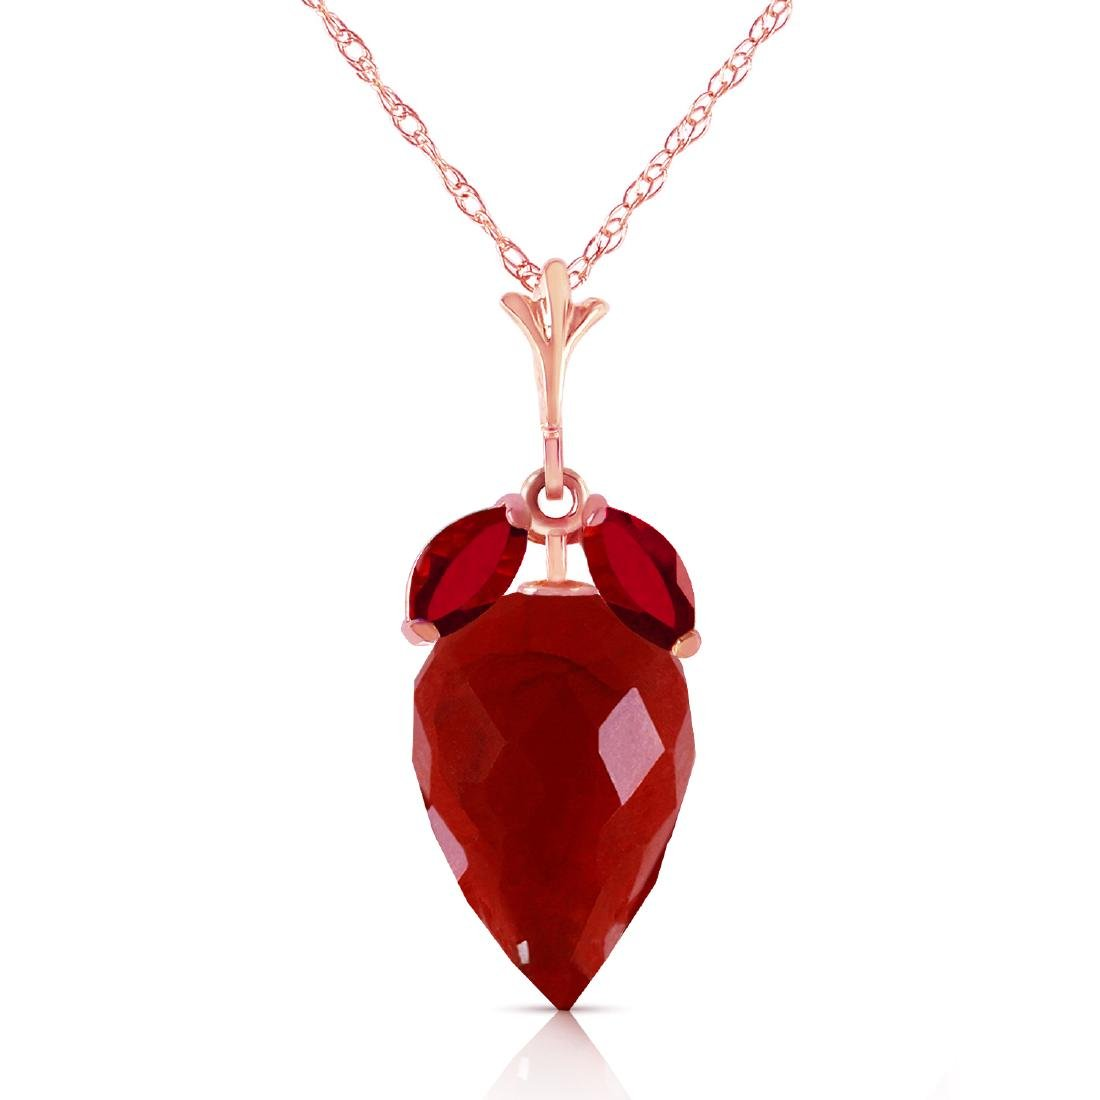 Genuine 13.5 ctw Ruby Necklace Jewelry 14KT Rose Gold -